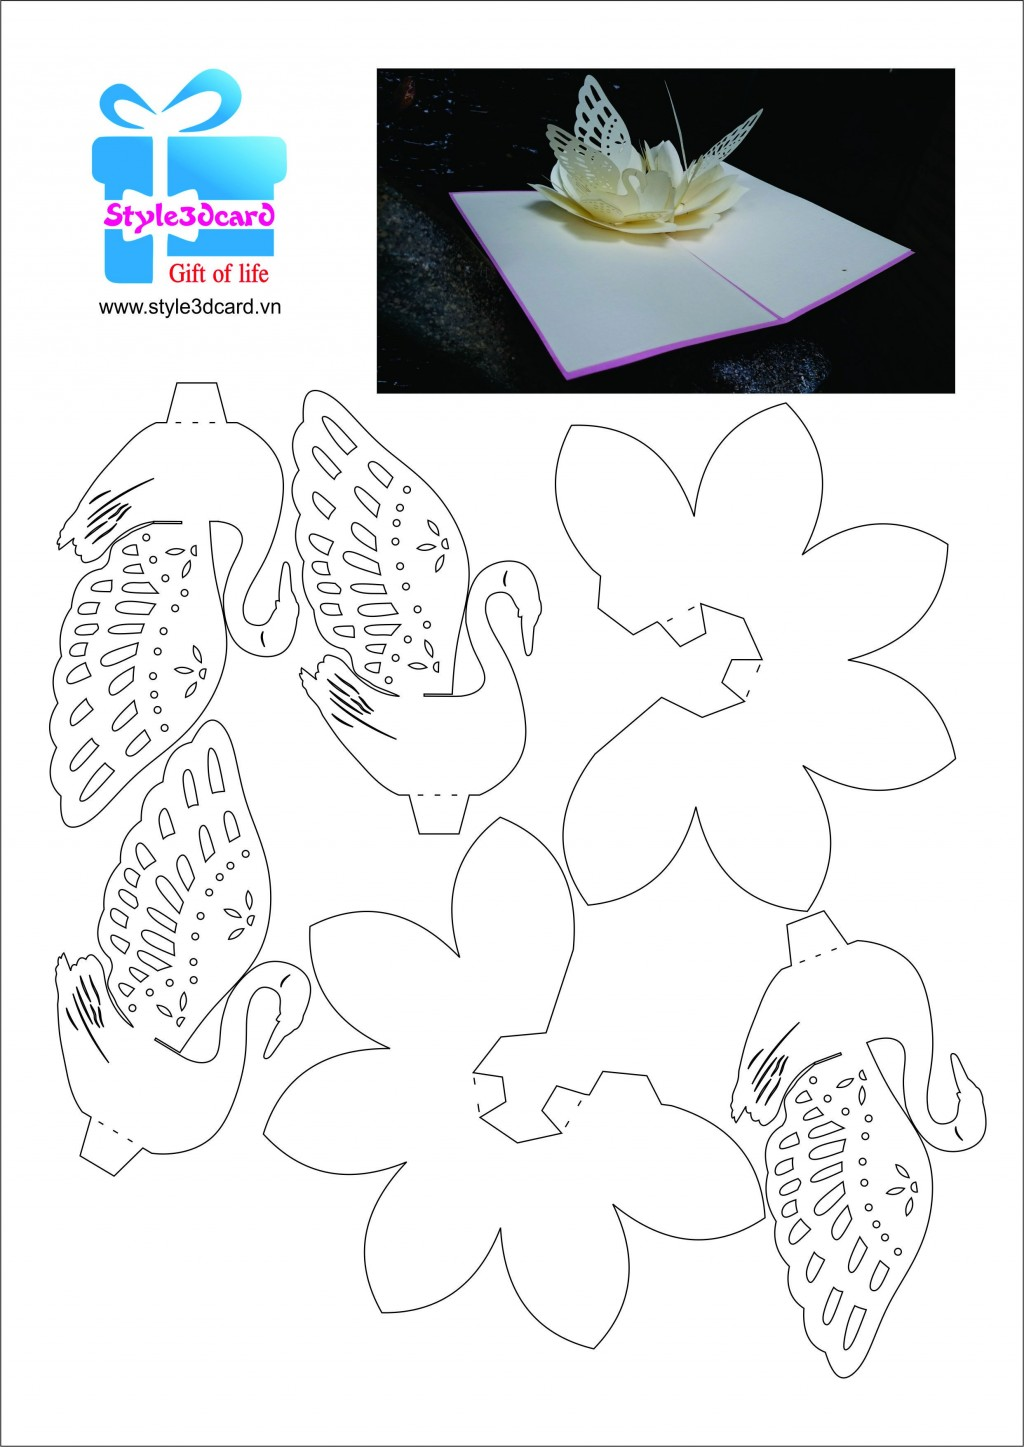 000 Incredible Pop Up Card Template Concept  Templates Birthday Free Download Printable FlowerLarge